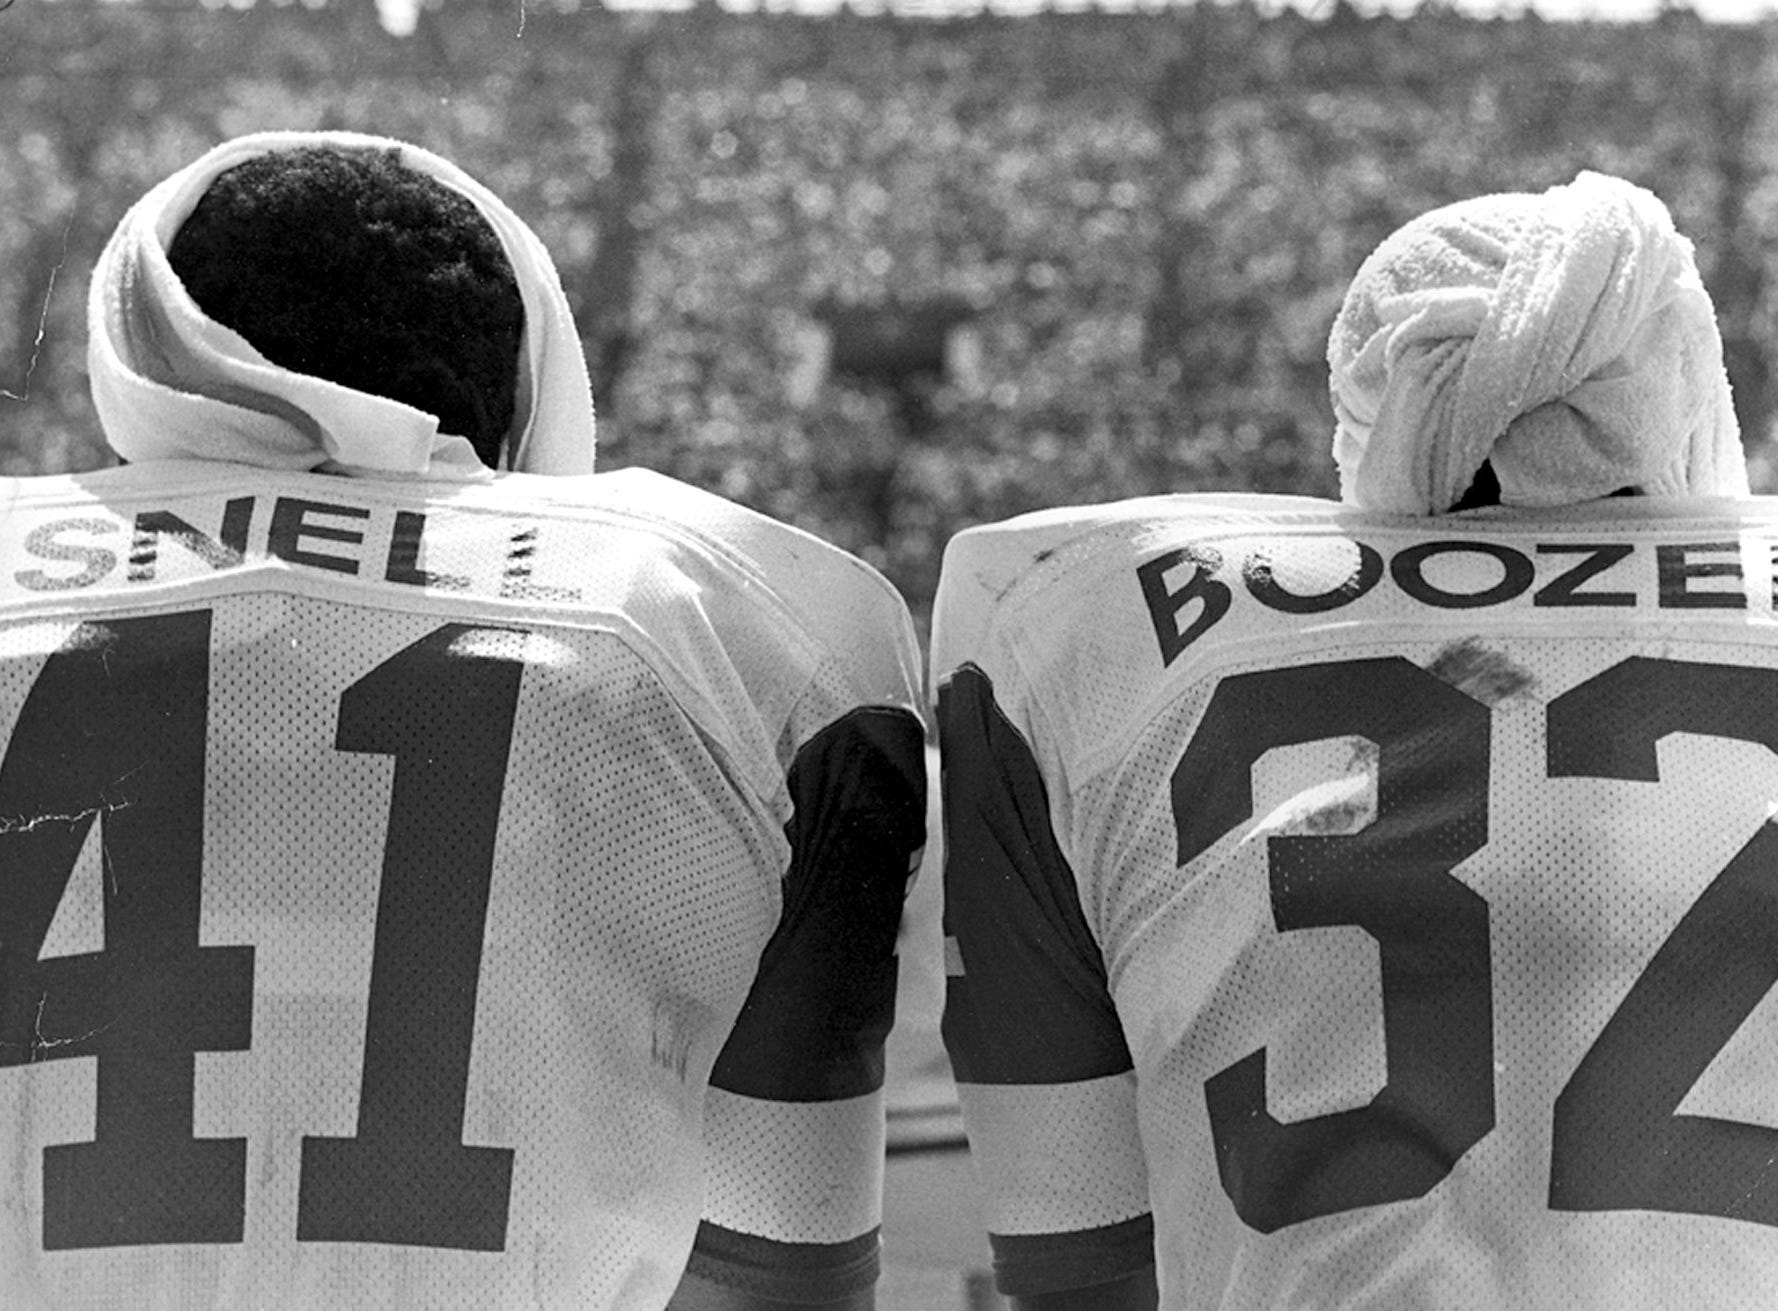 -  -BoozerESidelineIJets running backs Matt Snell and Emerson Boozer on the sidelines at the Yale Bowl during the Jets 37-14 win over the New York Giants on August 17, 1969. Offense.(credit - New York Jets)